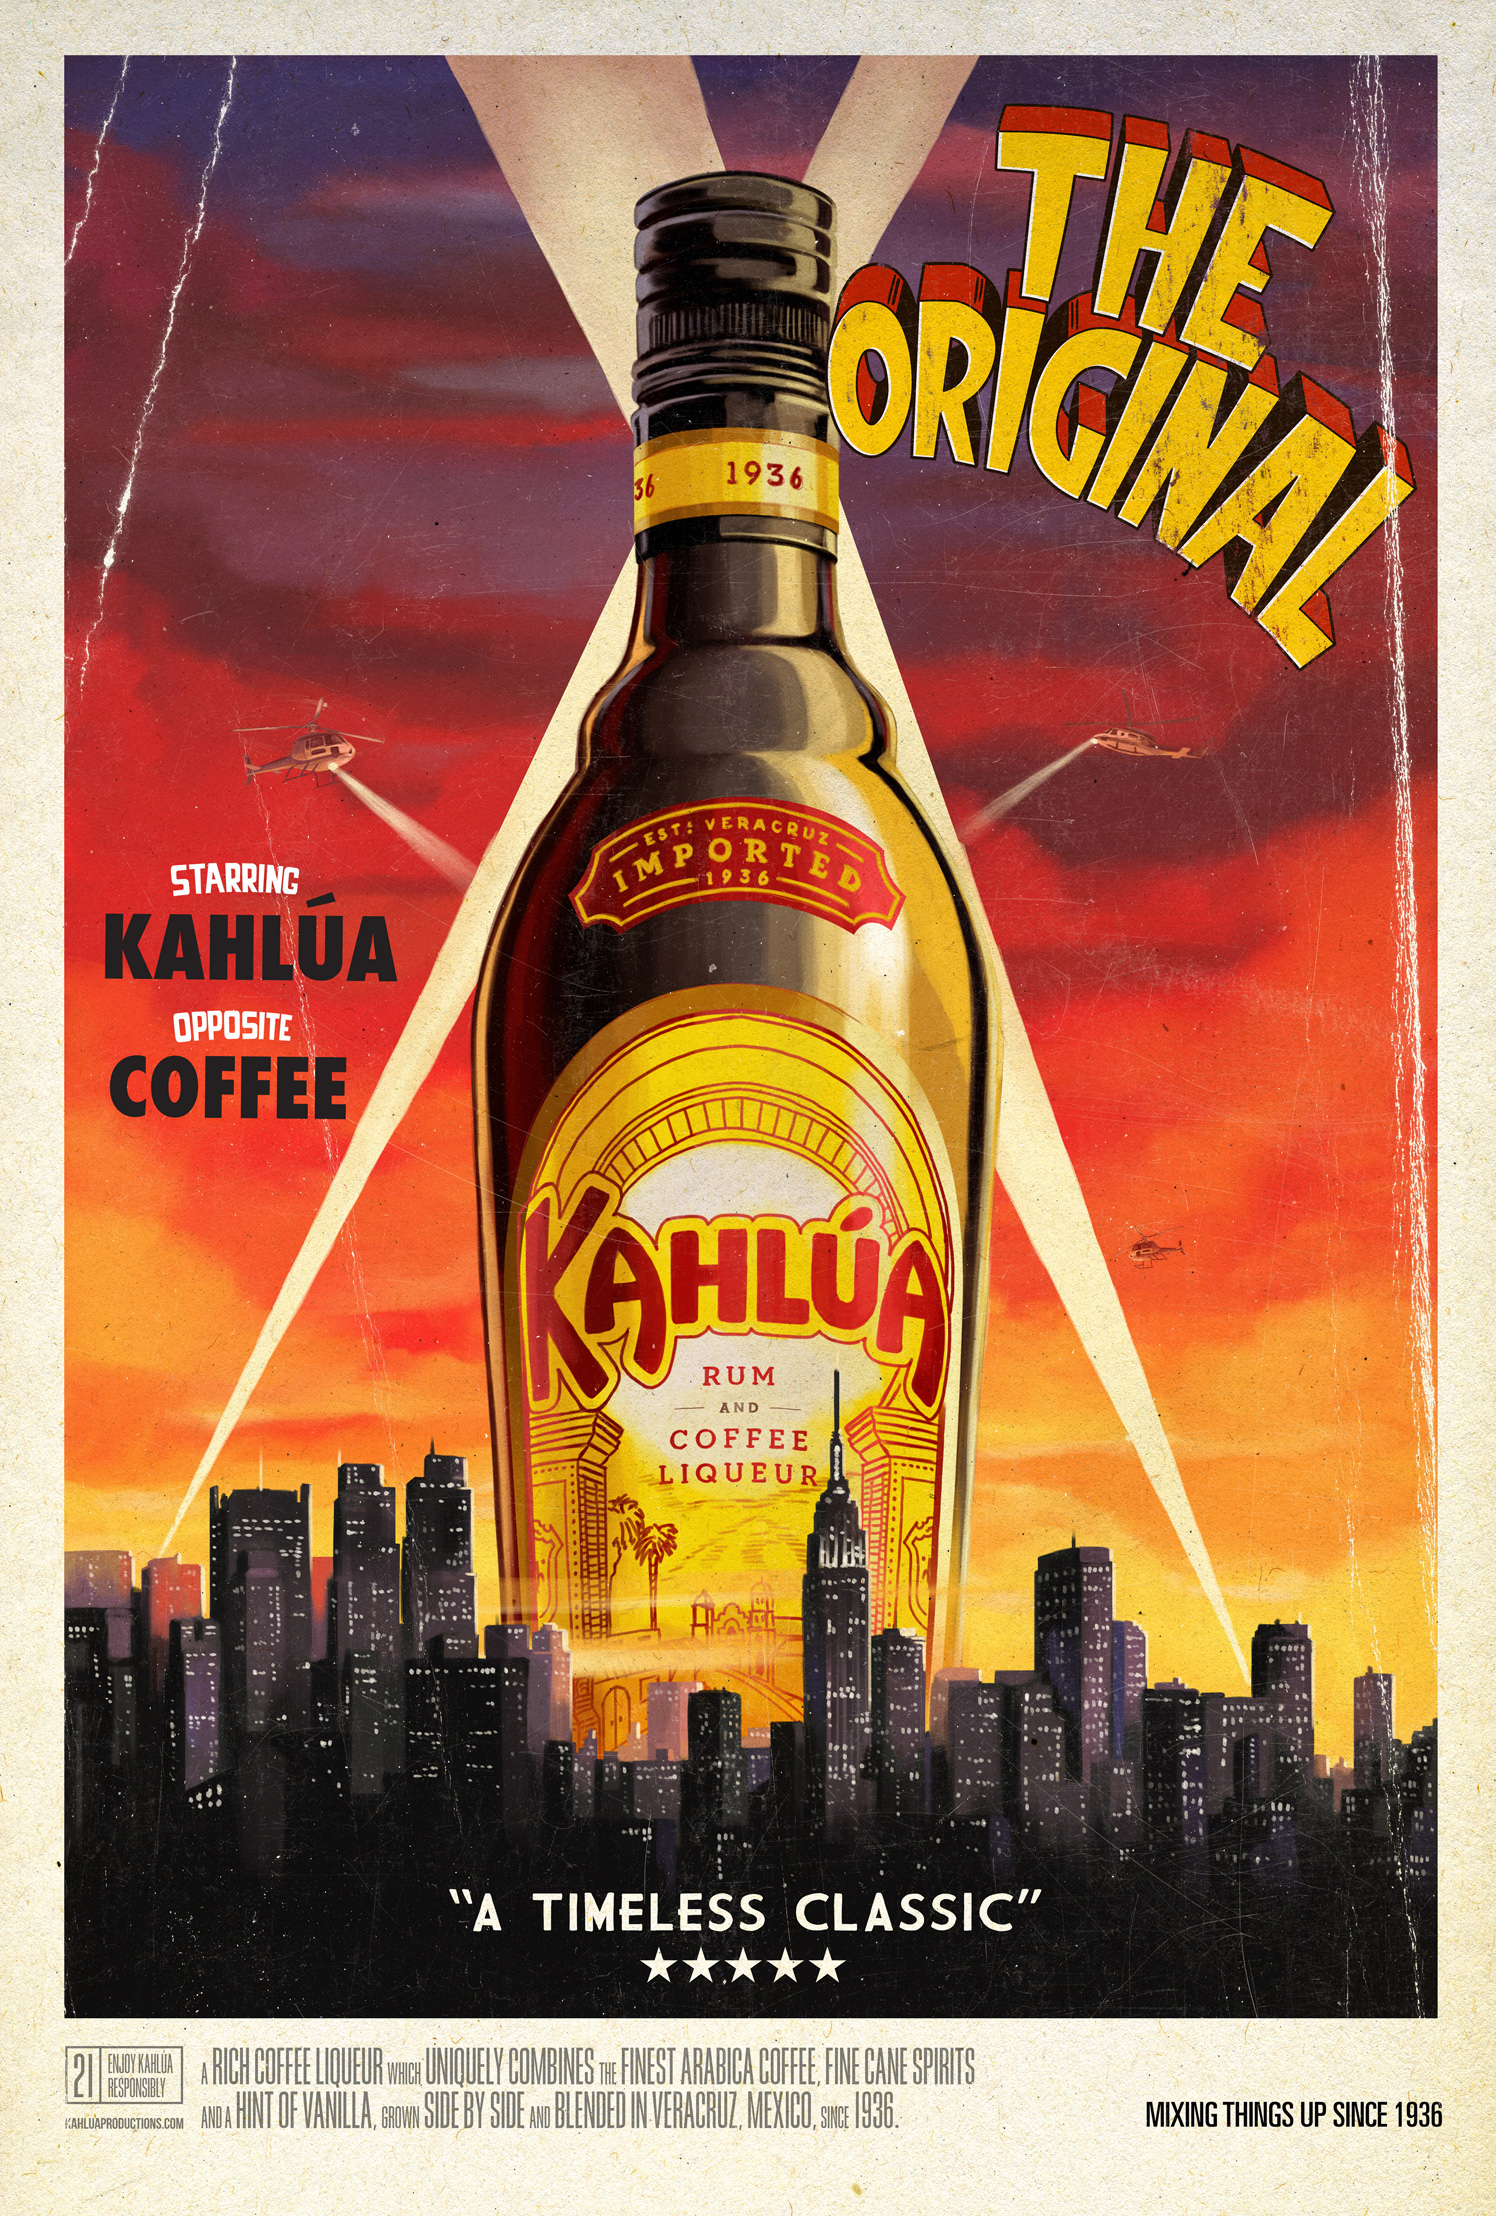 The Original / Kahlua